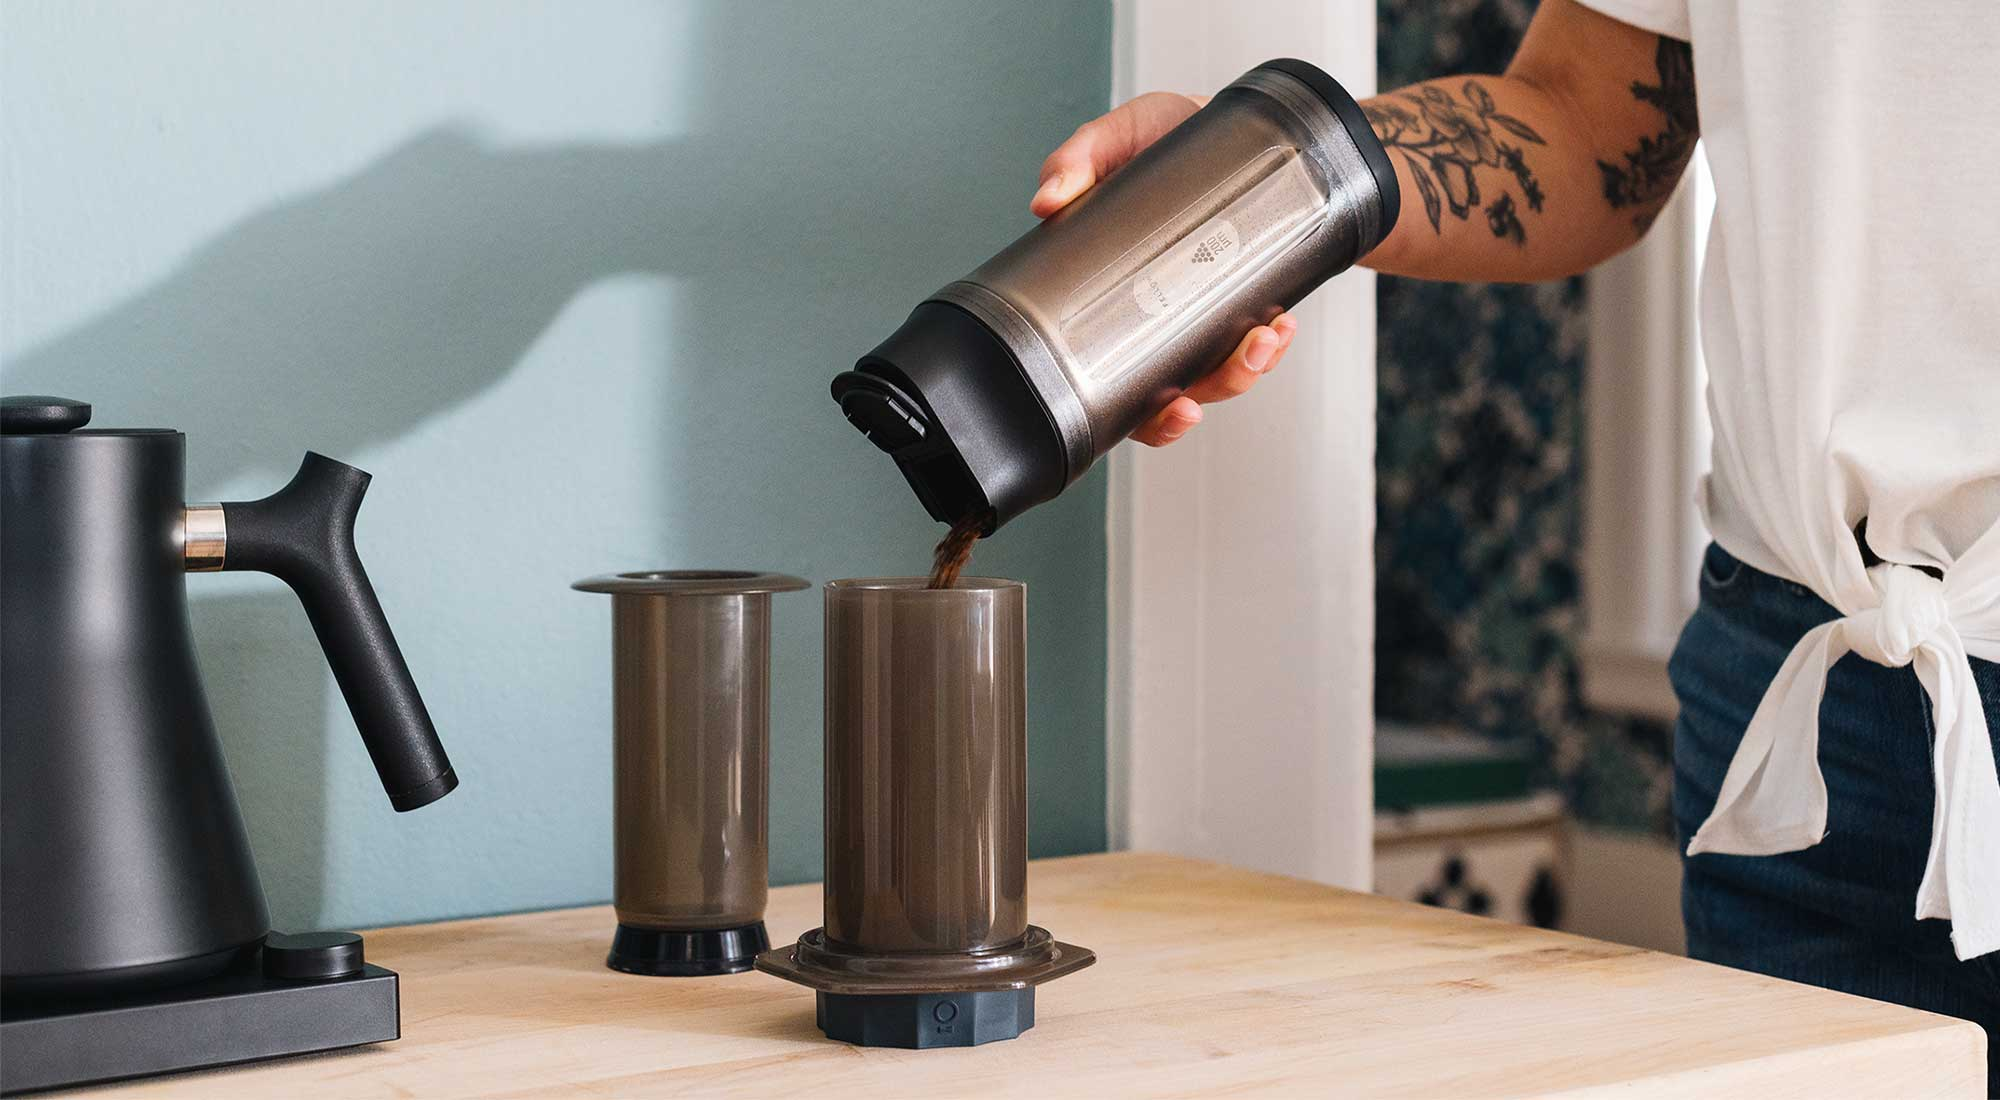 Shimmy Coffee Sieve pouring grinds into Prismo AeroPress Attachment